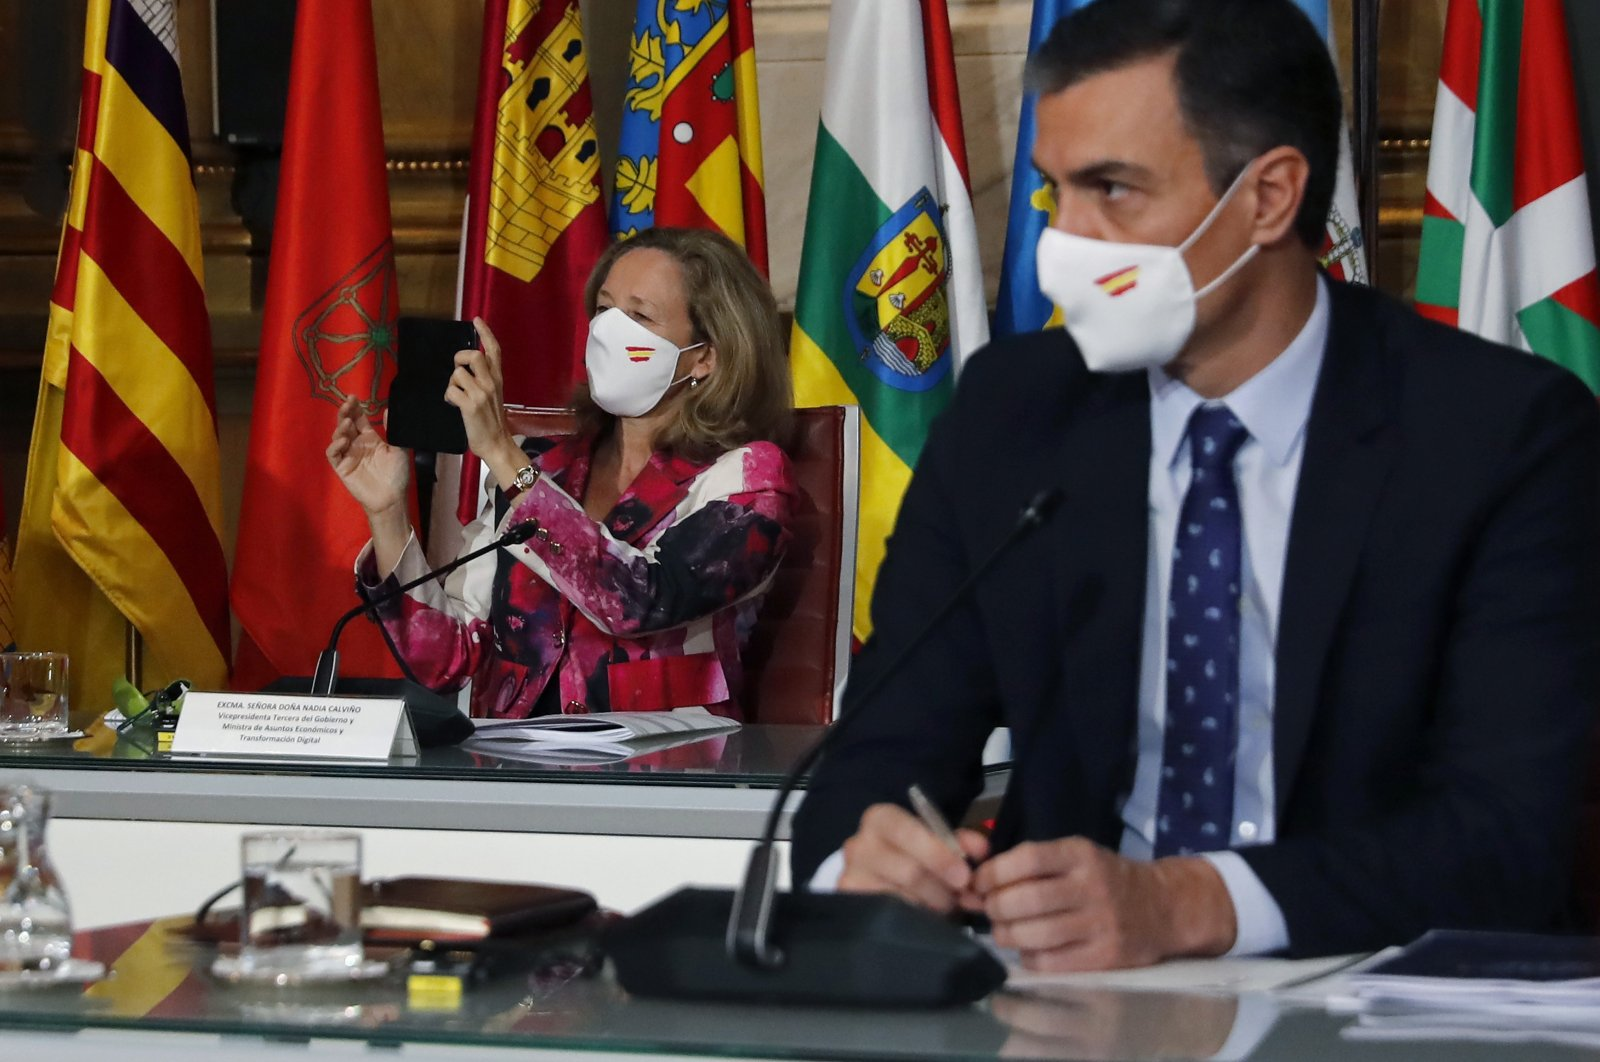 Spanish Economy Minister Nadia Calvino (L) and Prime Minister Pedro Sanchez attend the Regional Presidents Conference in Madrid, Spain, Oct. 26, 2020. (EPA Photo)